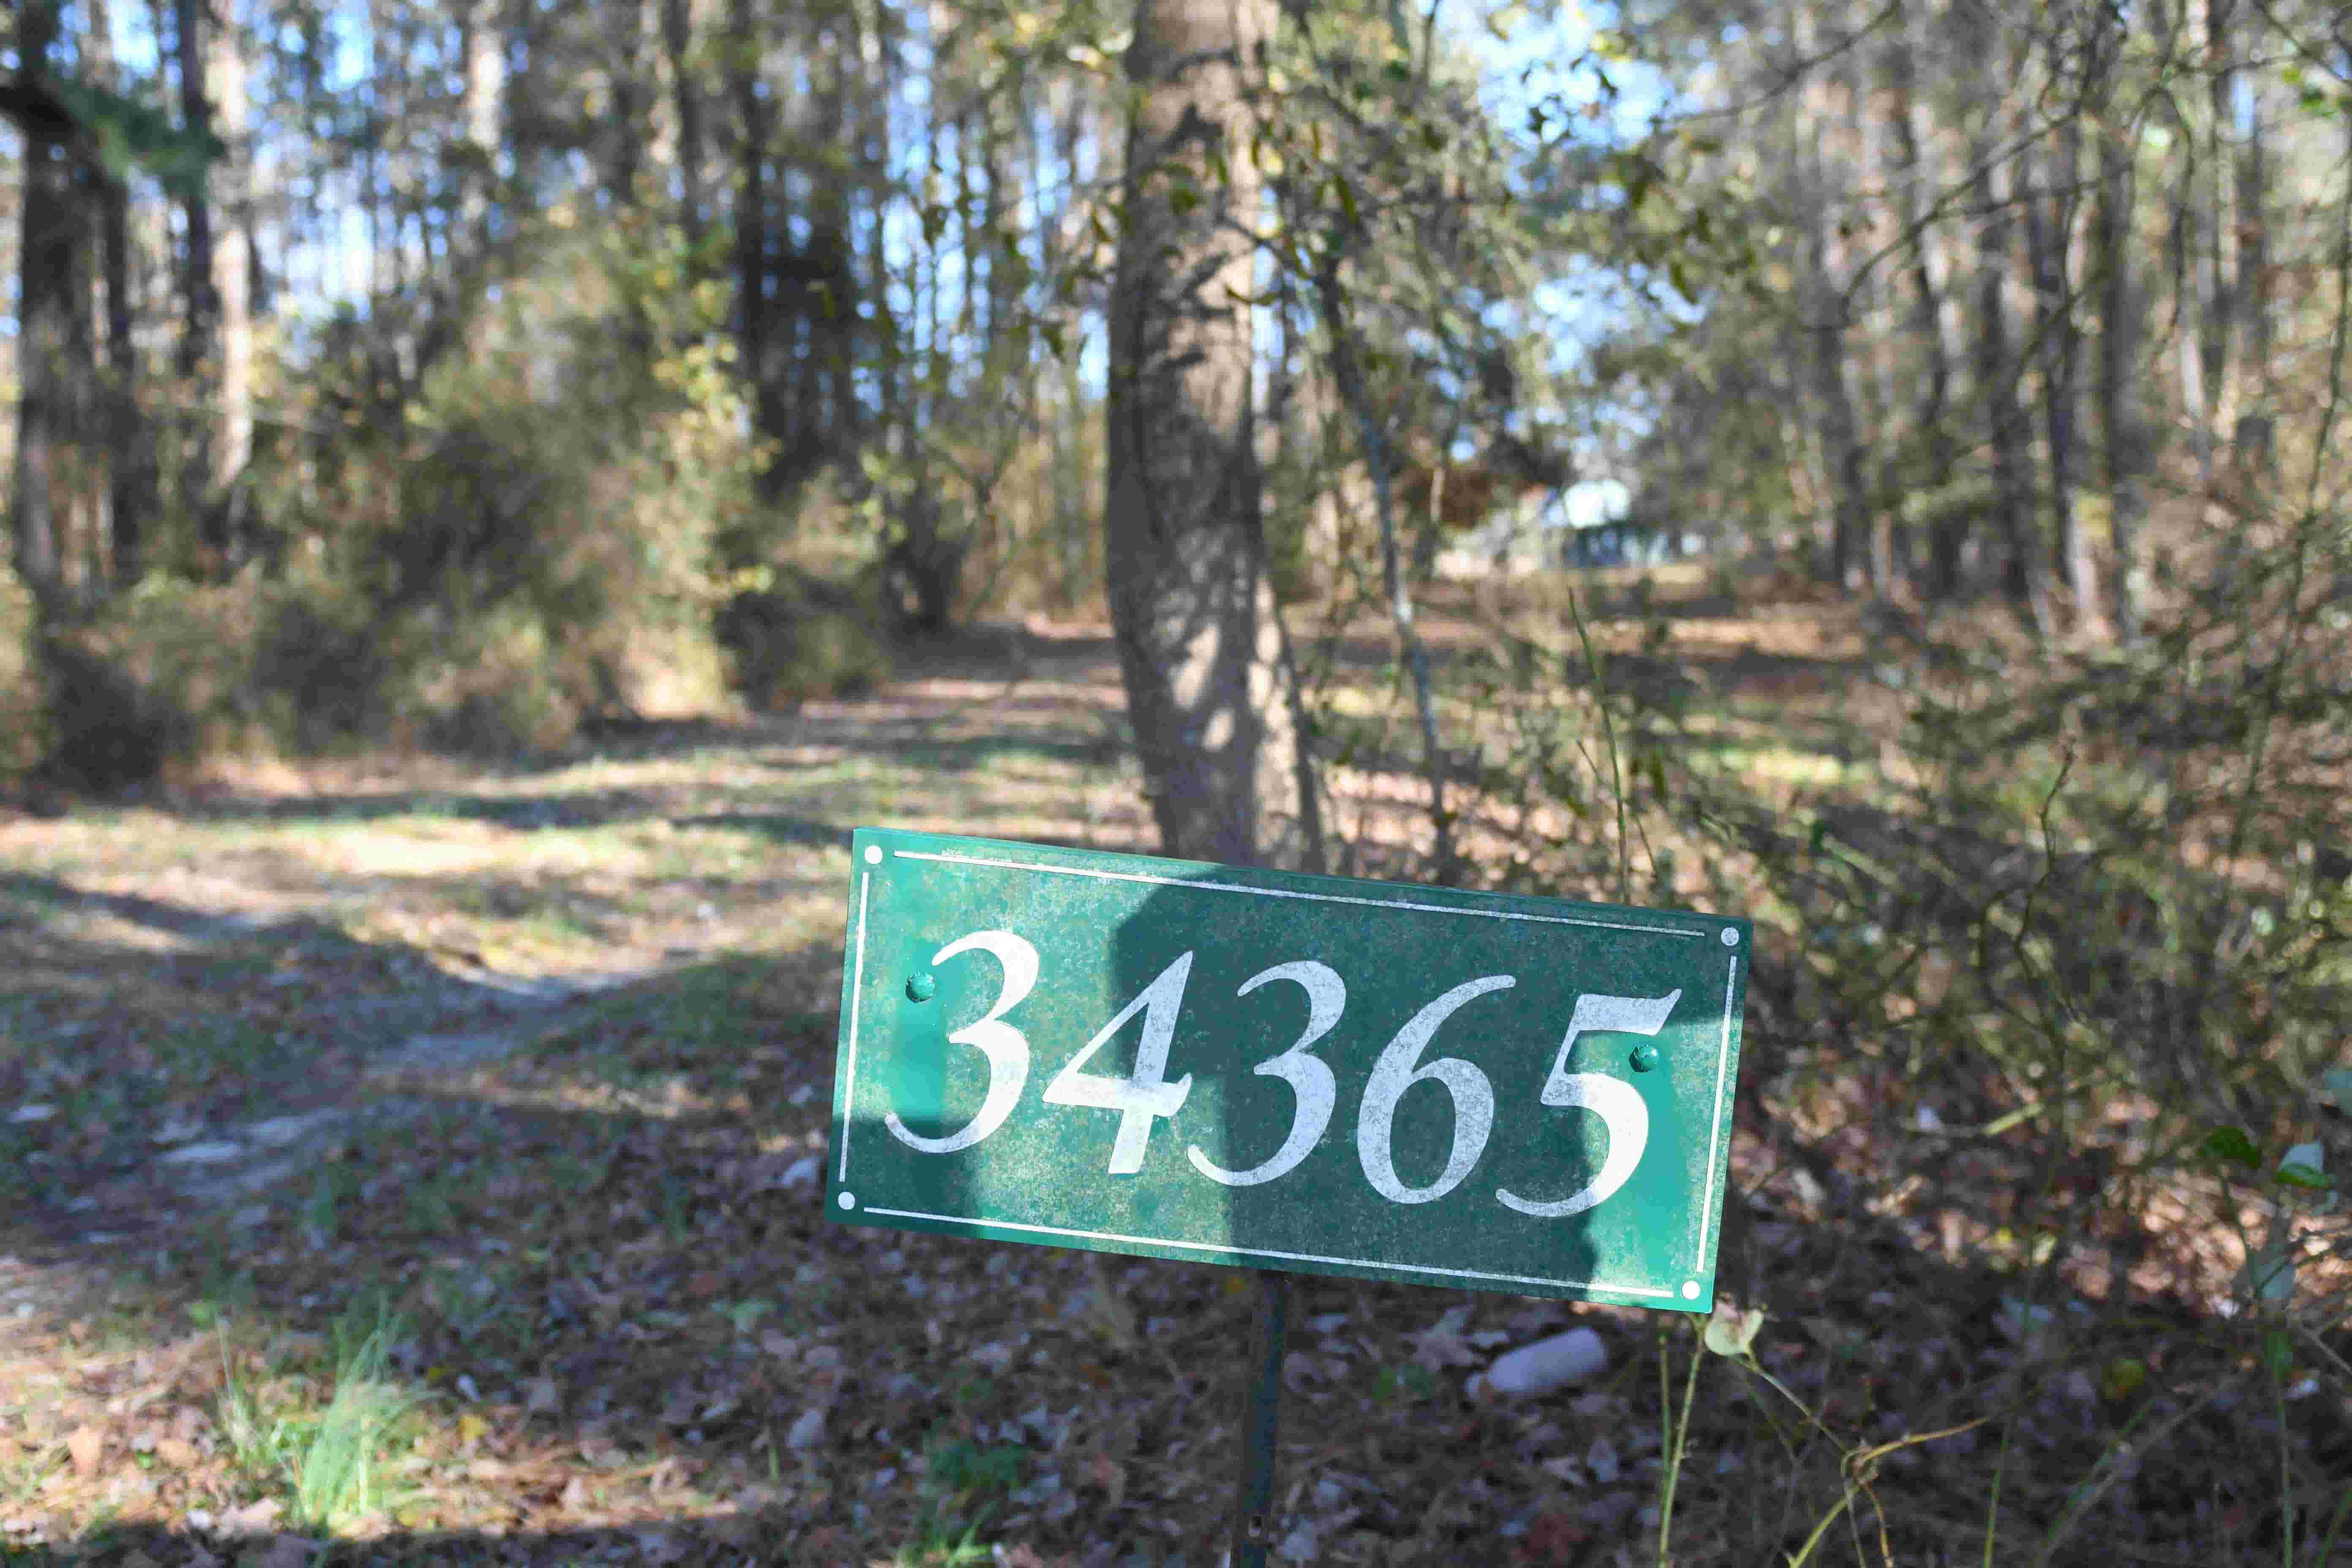 WATCH: Sussex slave gravesite lore brings controversy